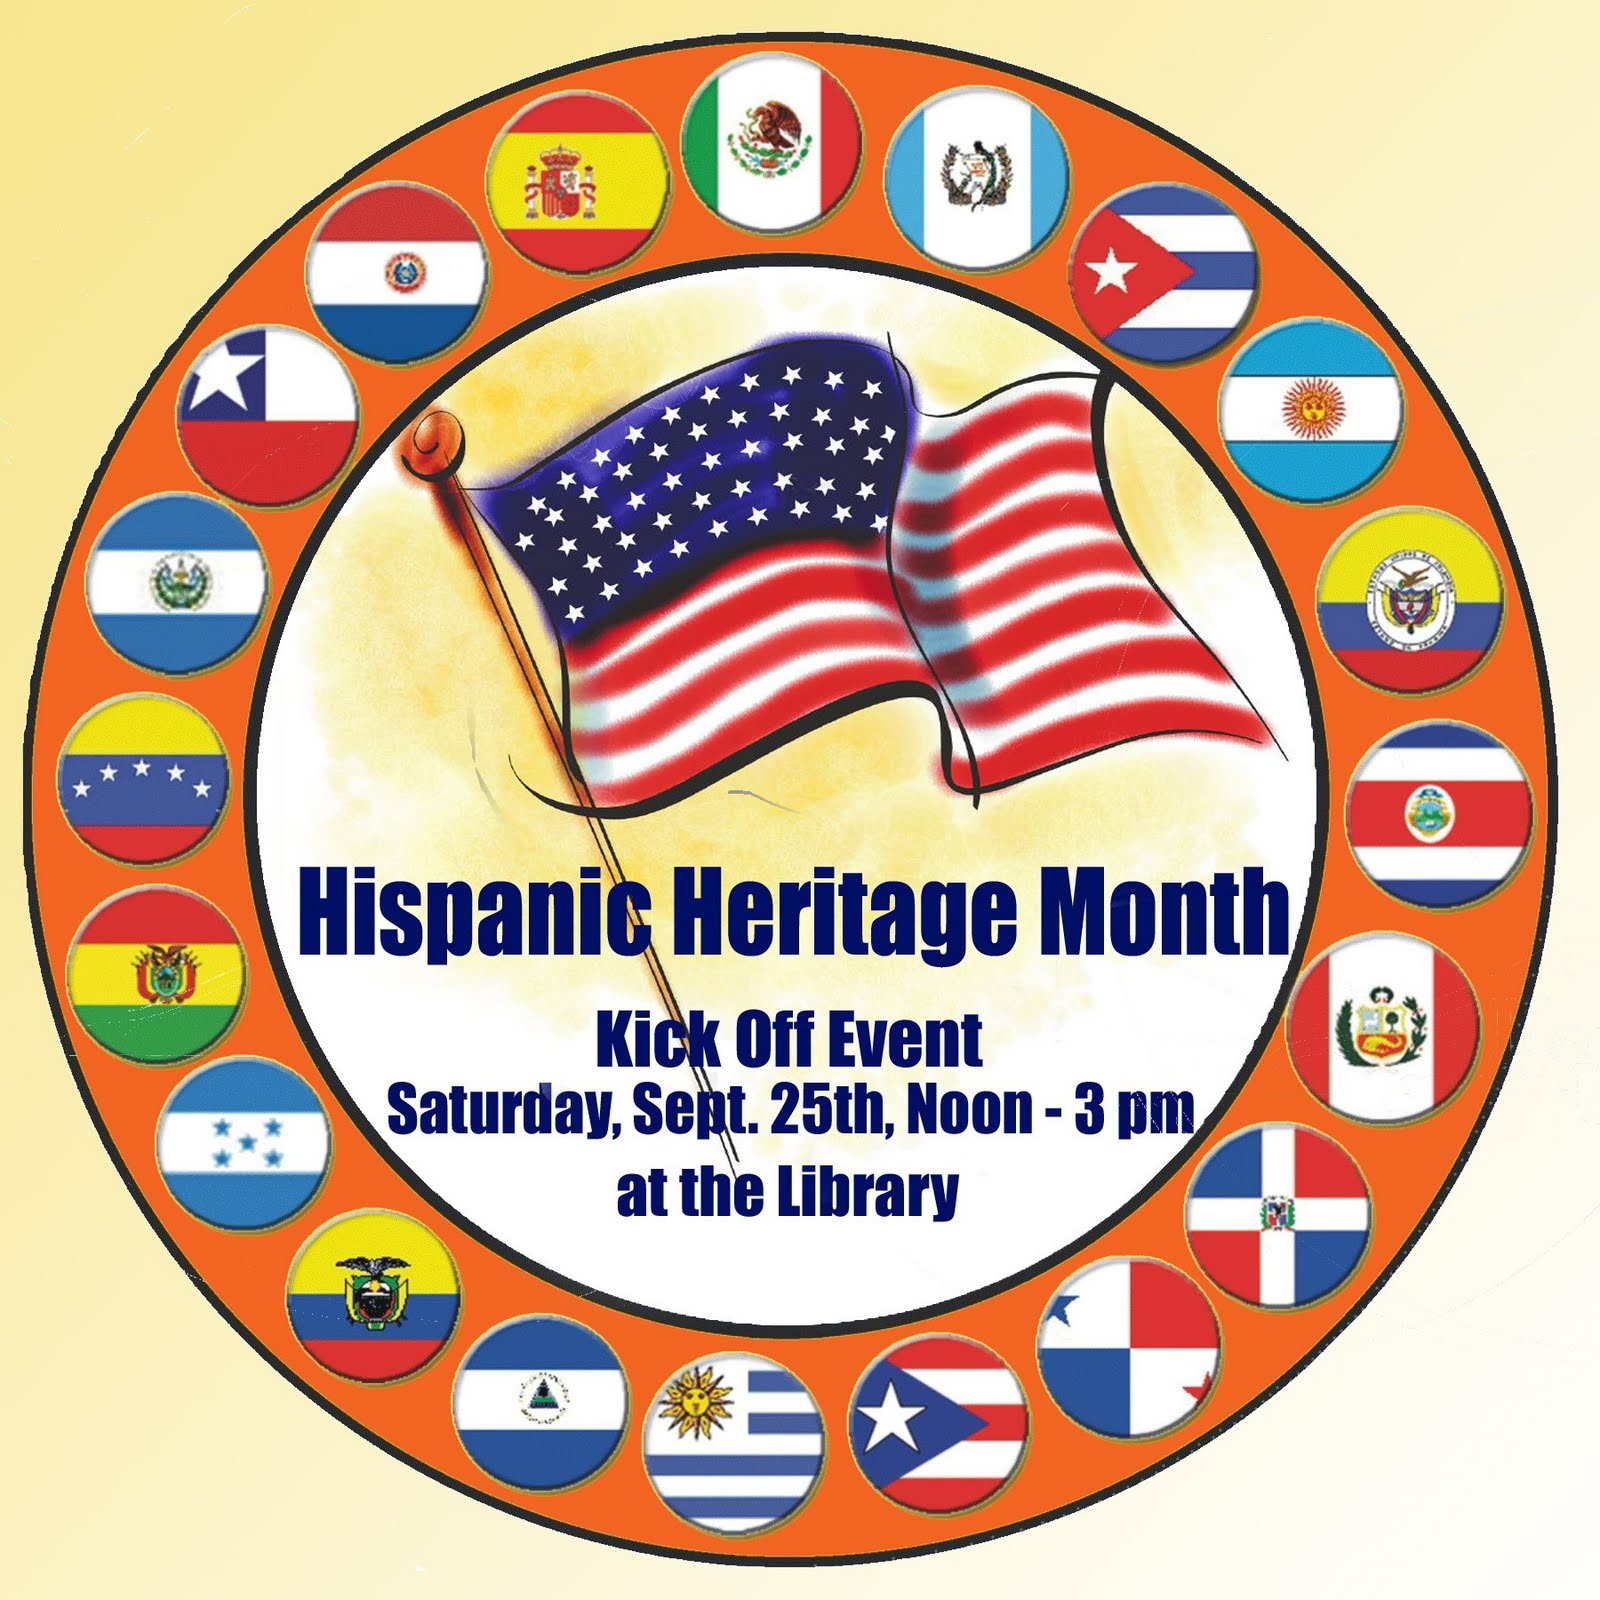 About National Hispanic Heritage Month